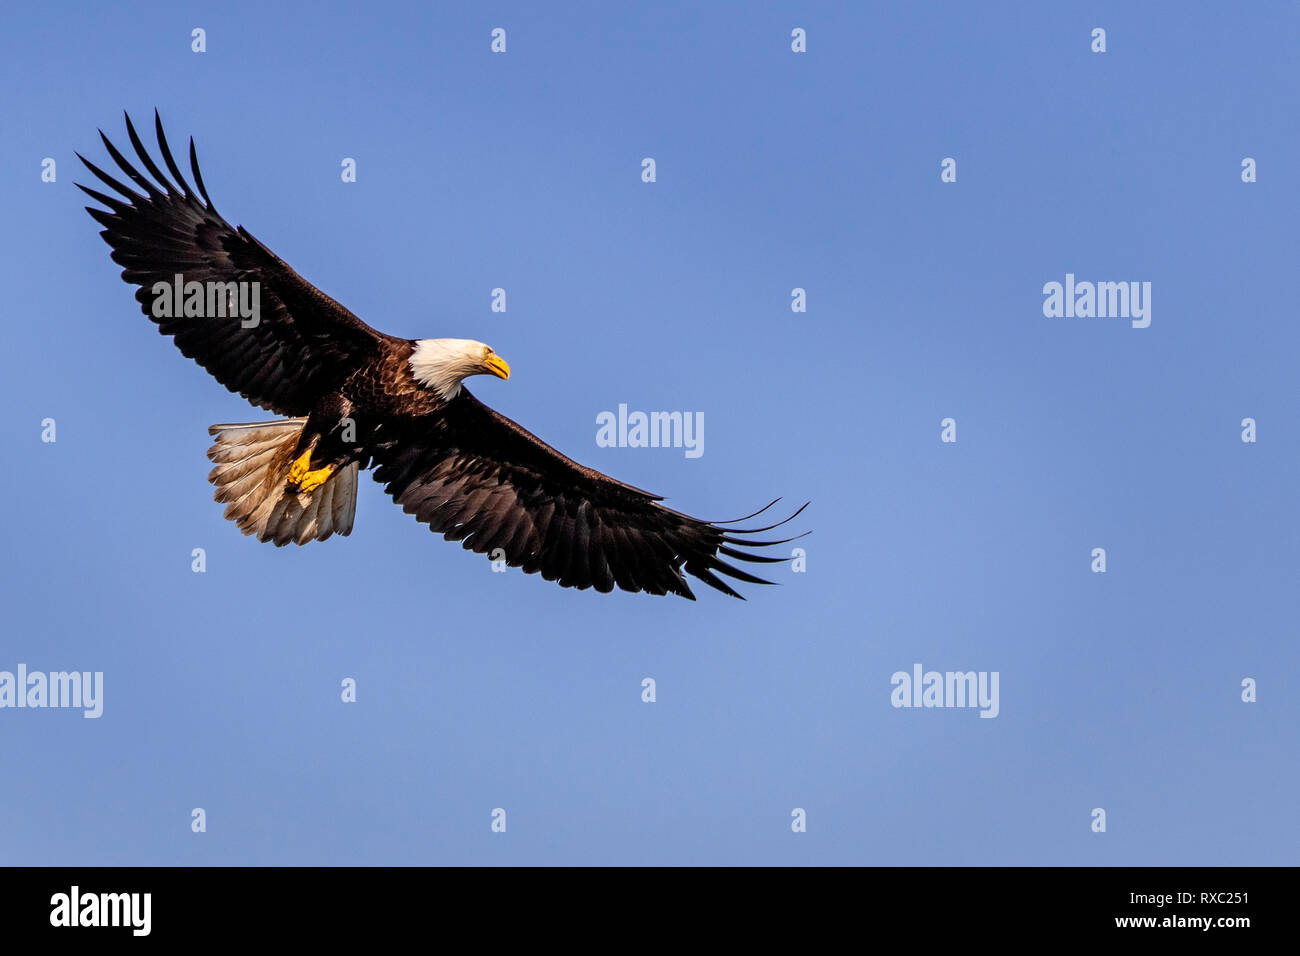 Bald eagle soaring on a beautiful spring day above the Broughton Archipelago, First Nations Territory, British Columbia, Canada. Stock Photo